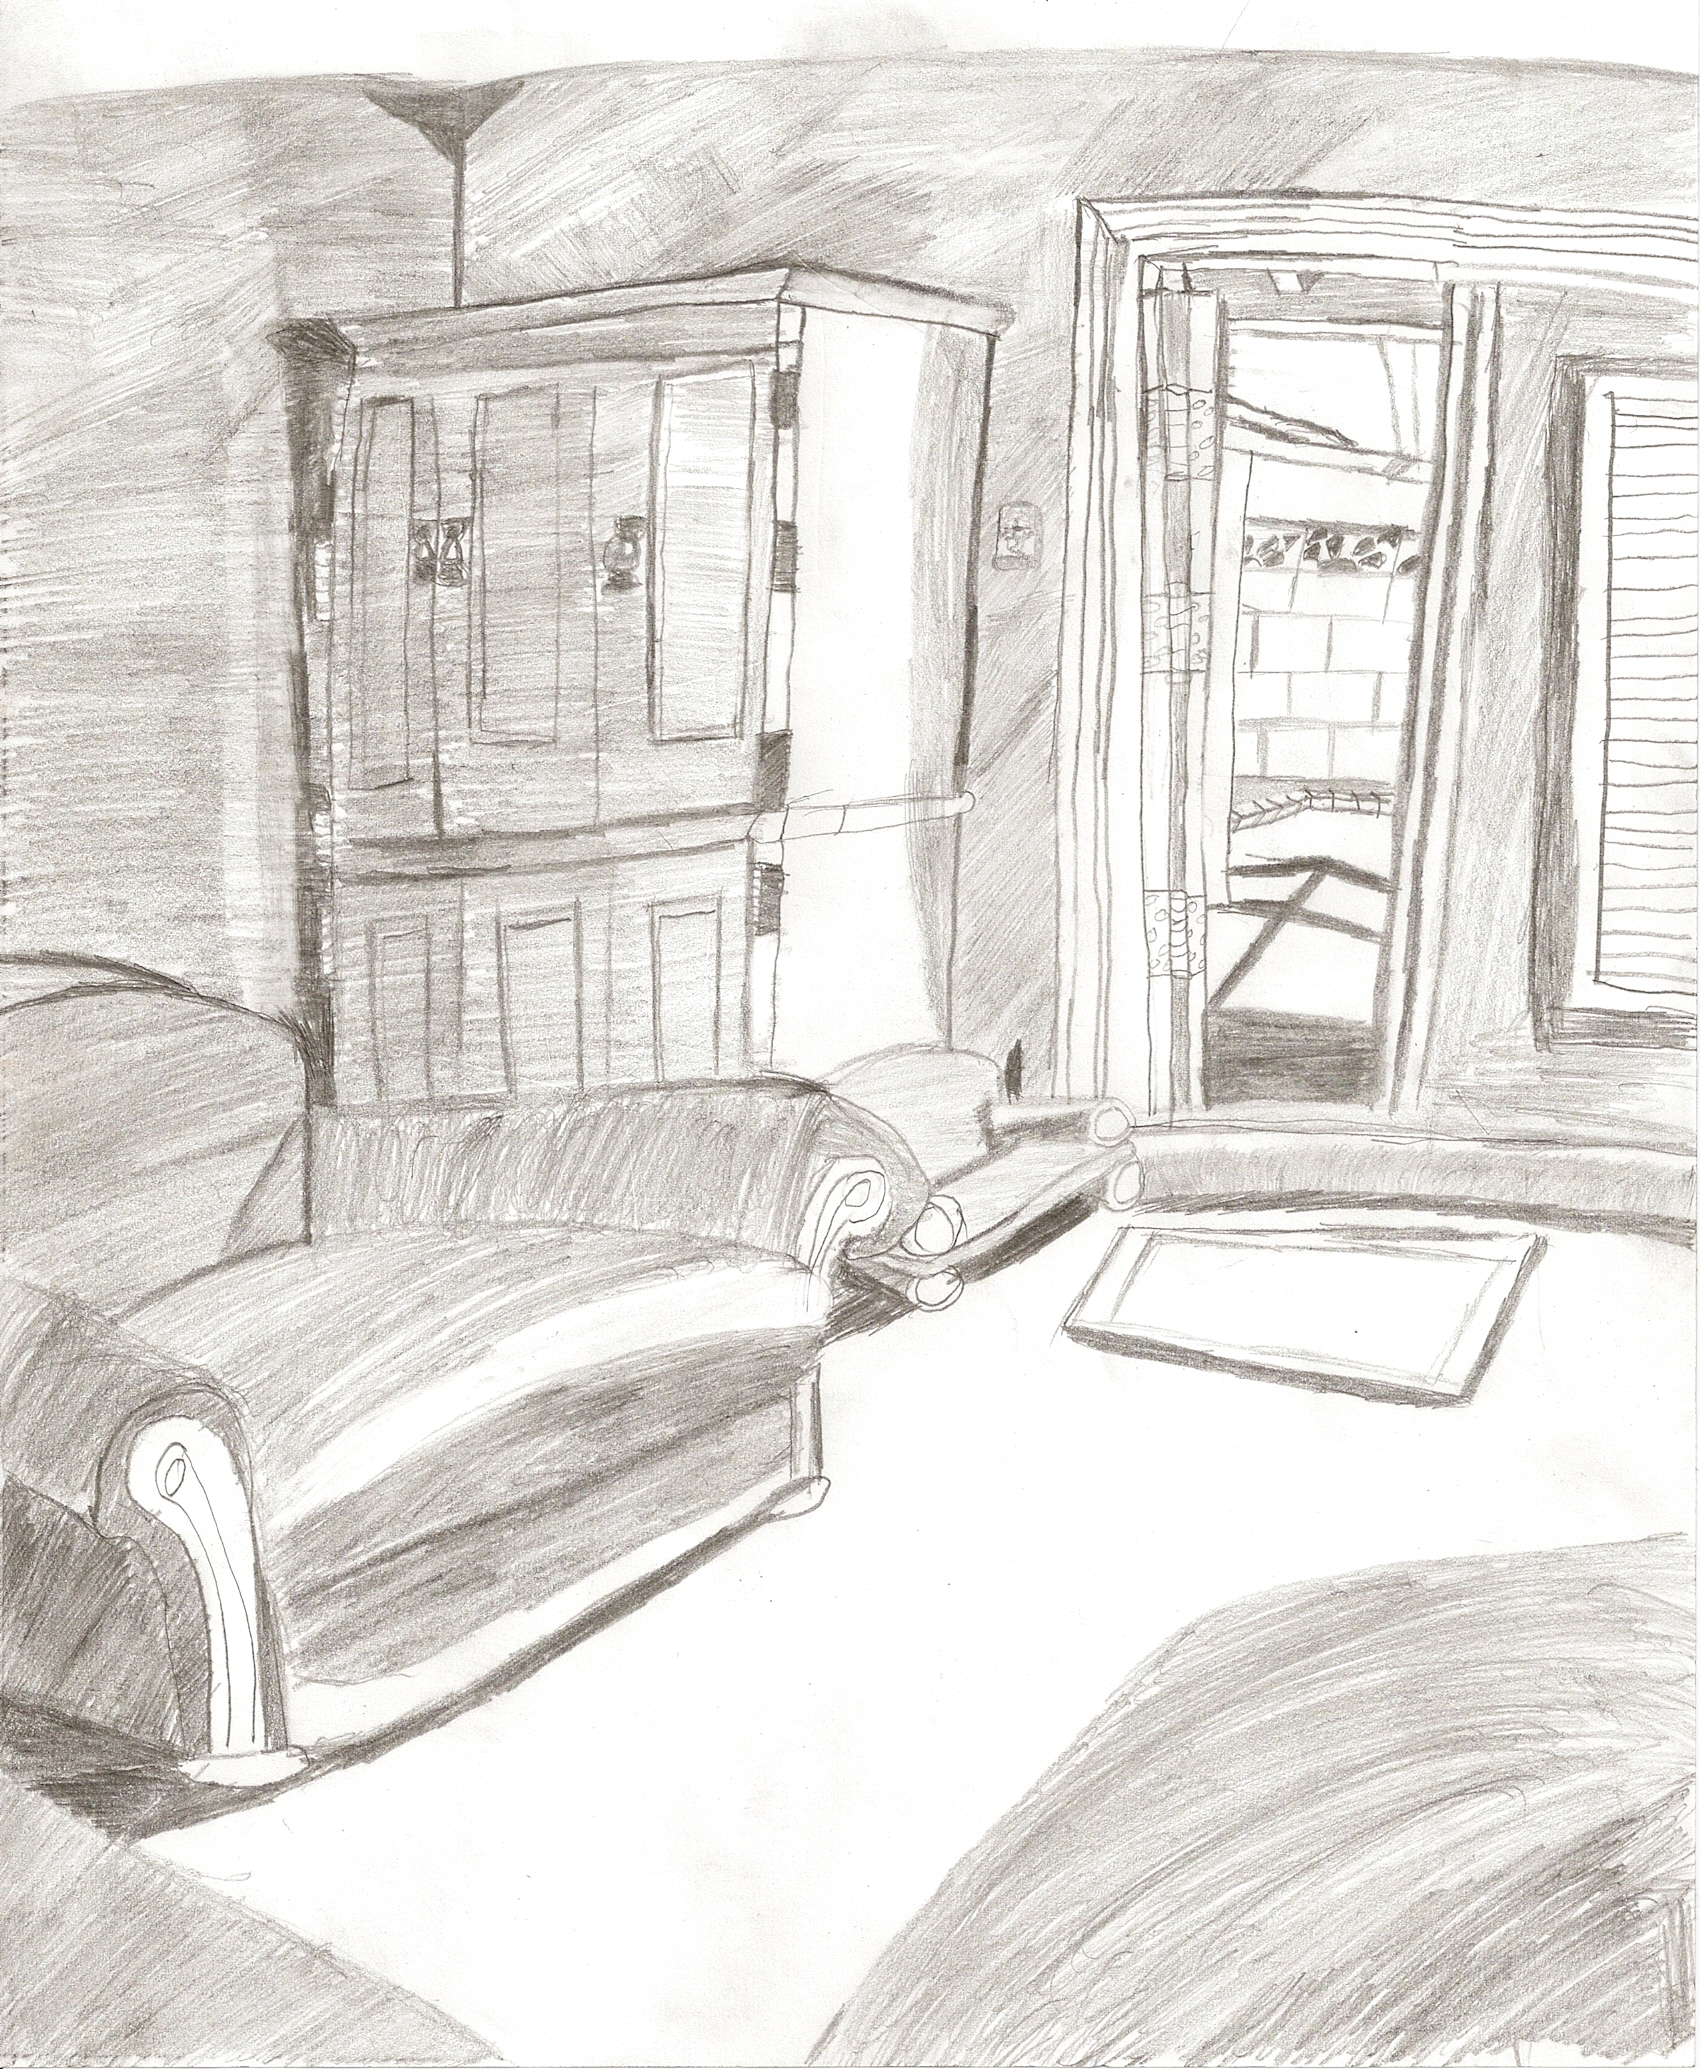 Living Room Sketch By Pielovinllamas On Newgrounds